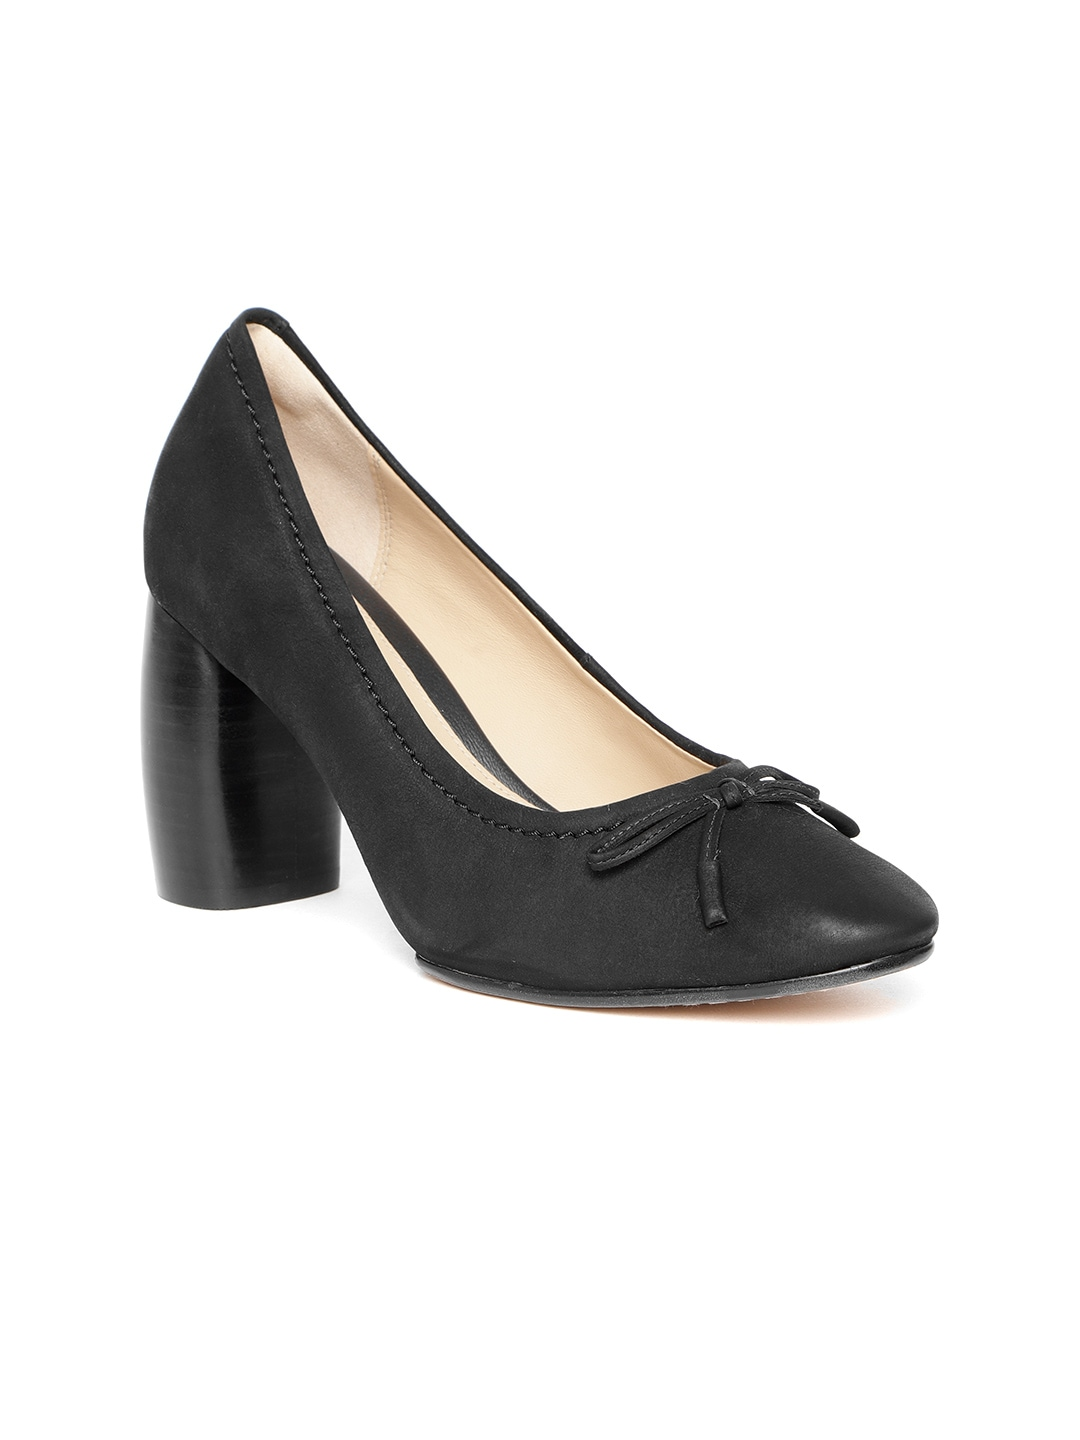 03f699987521 Women s Clarks Shoes - Buy Clarks Shoes for Women Online in India